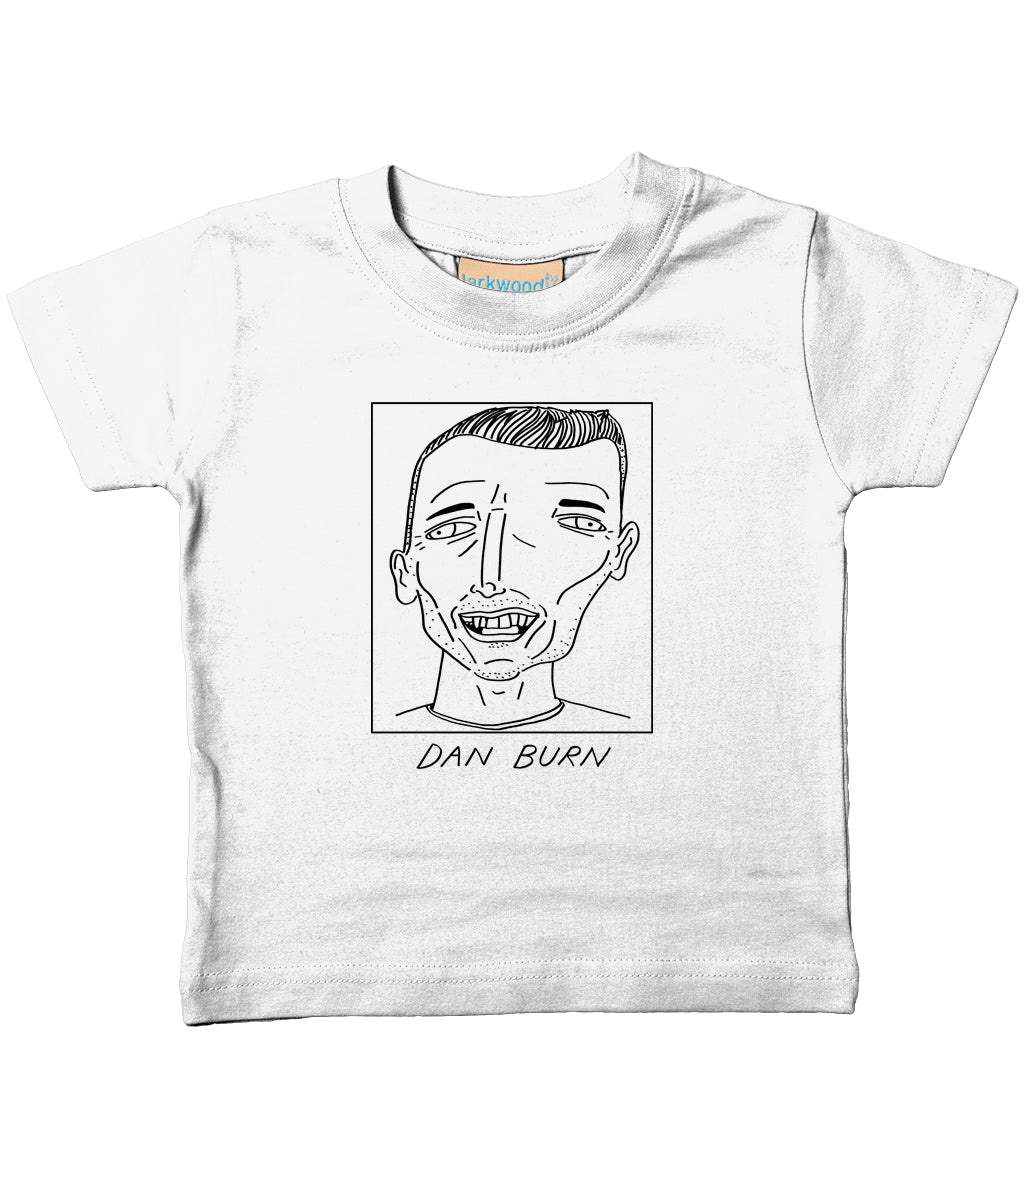 Badly Drawn Footballers - Baby / Toddler Organic T-Shirt - Dan Burn